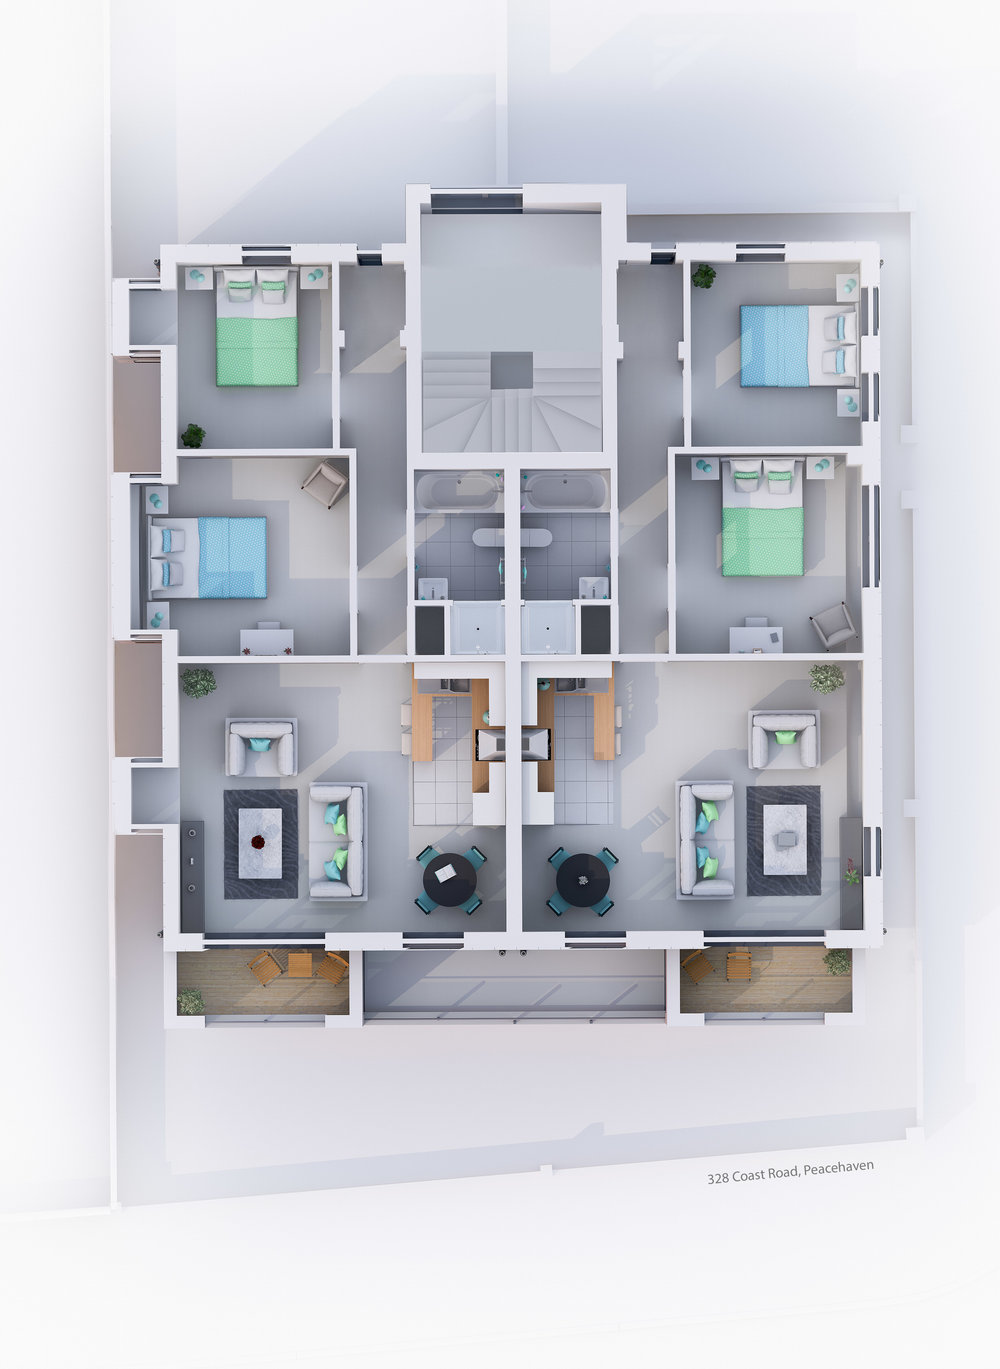 Coast Road  - 3D Floorplans - Peacehaven, UK